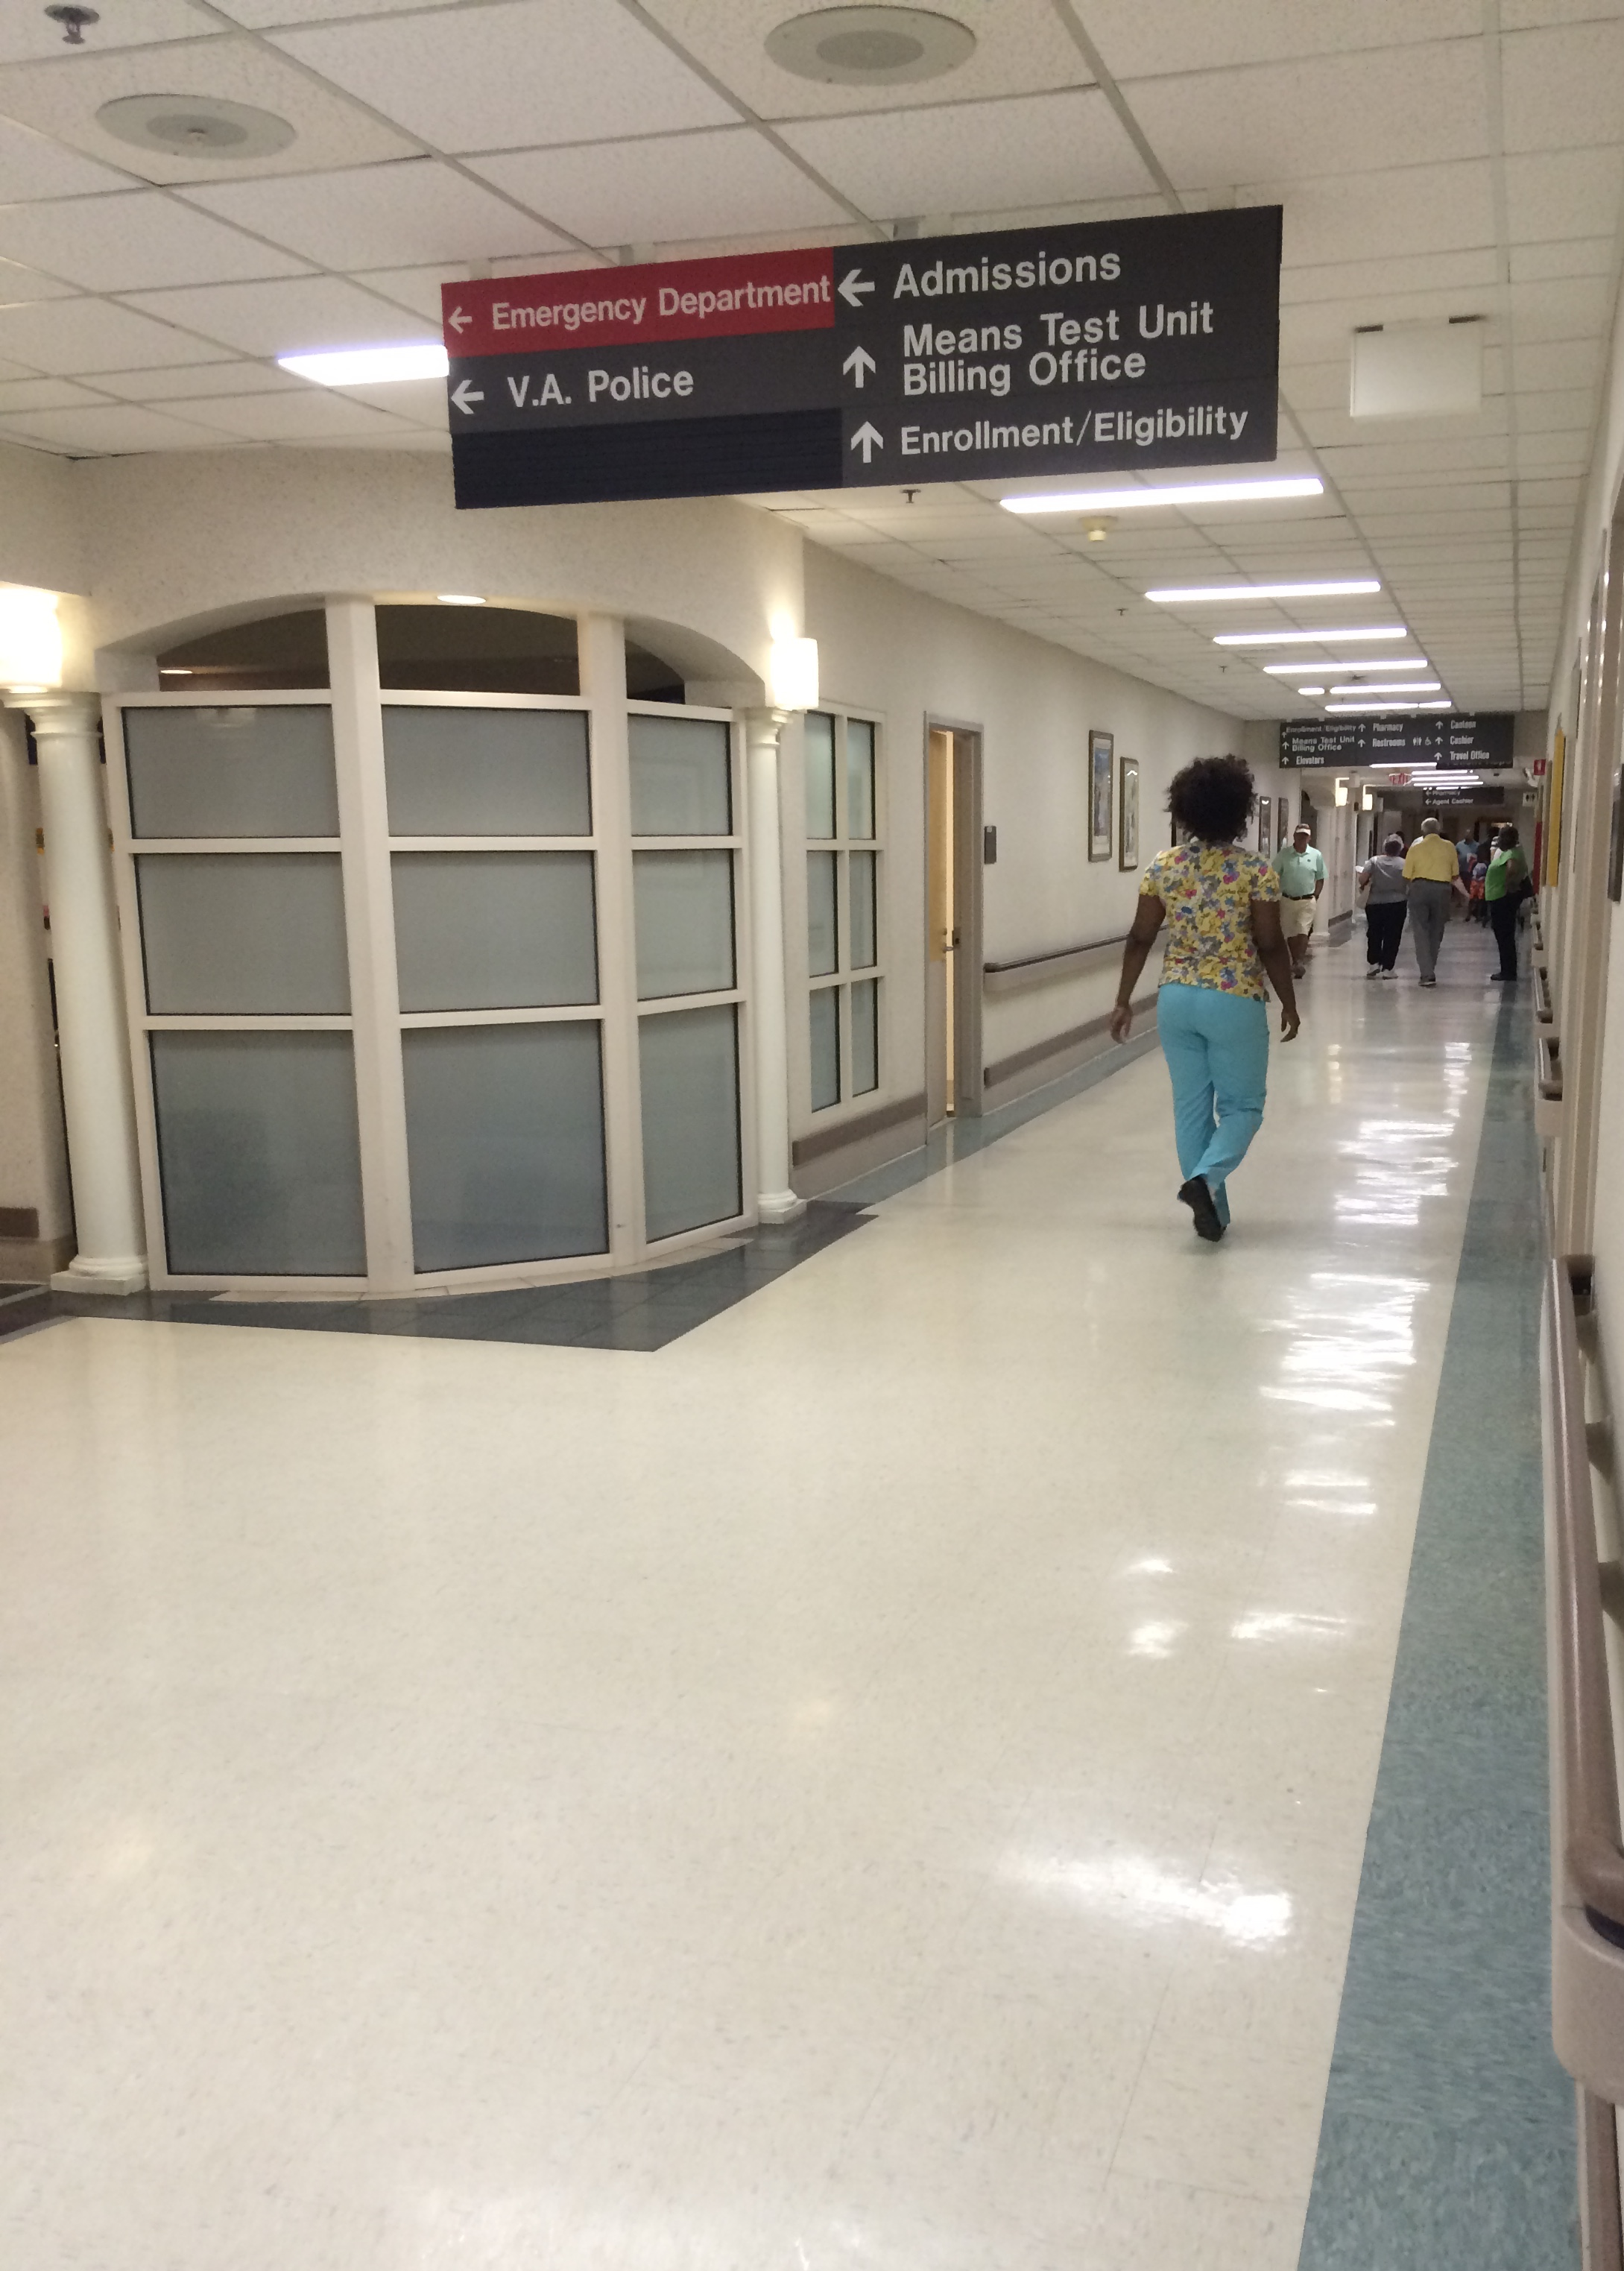 10 Things I Didn\'t Find at the VA Hospital – Applied Faith